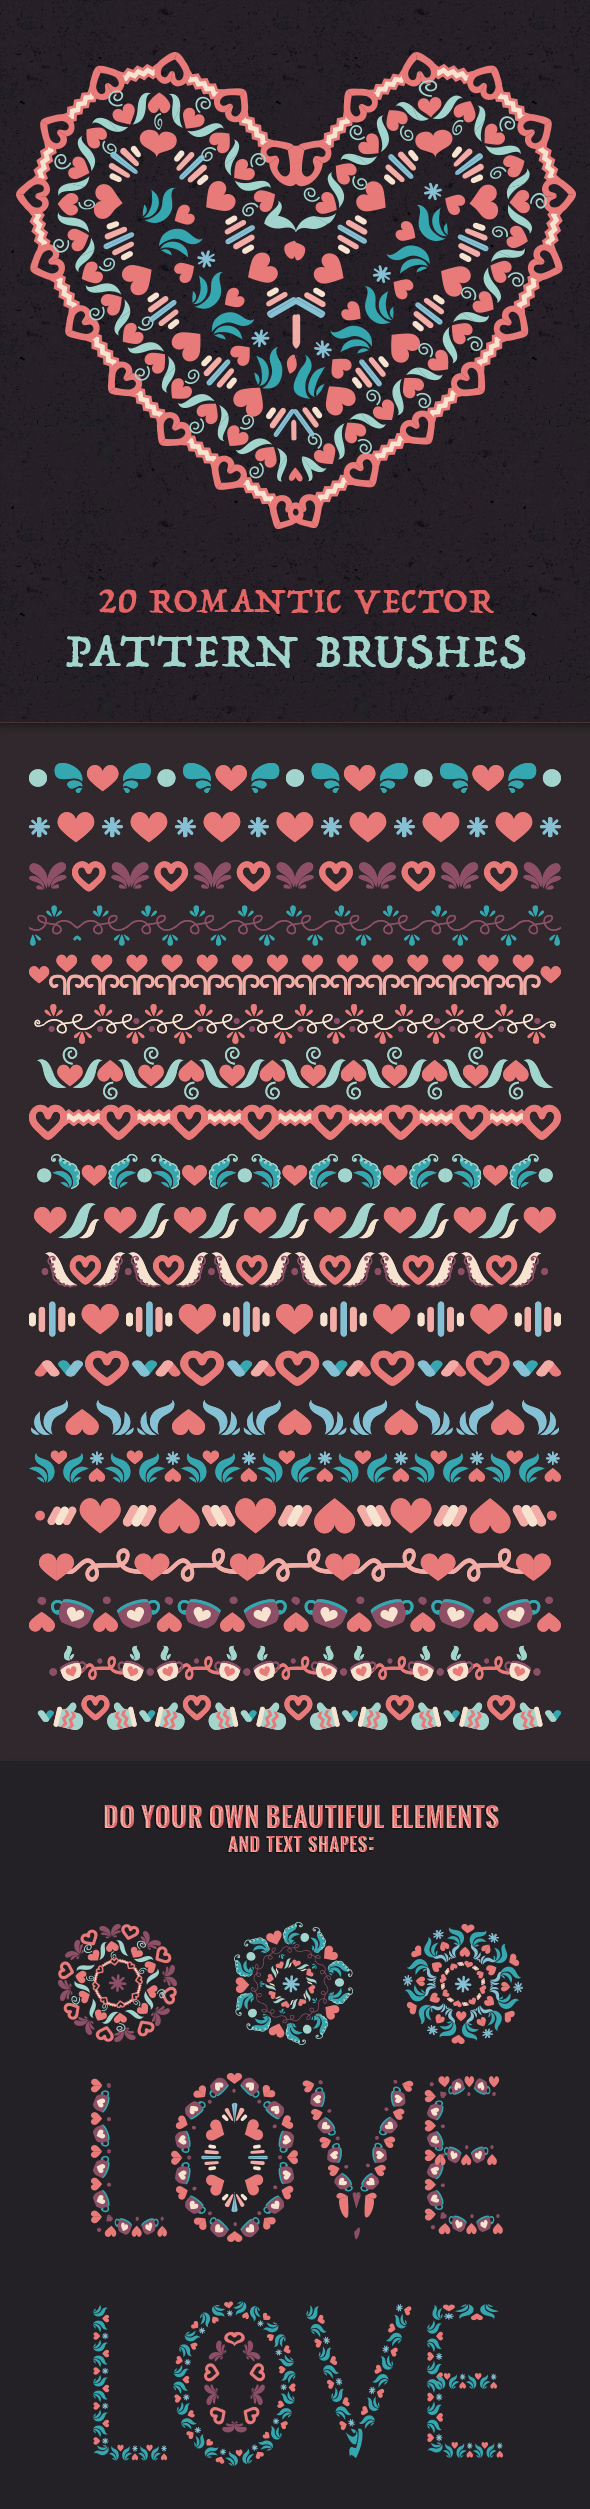 20 Romantic Vector Pattern Brushes - Artistic Brushes